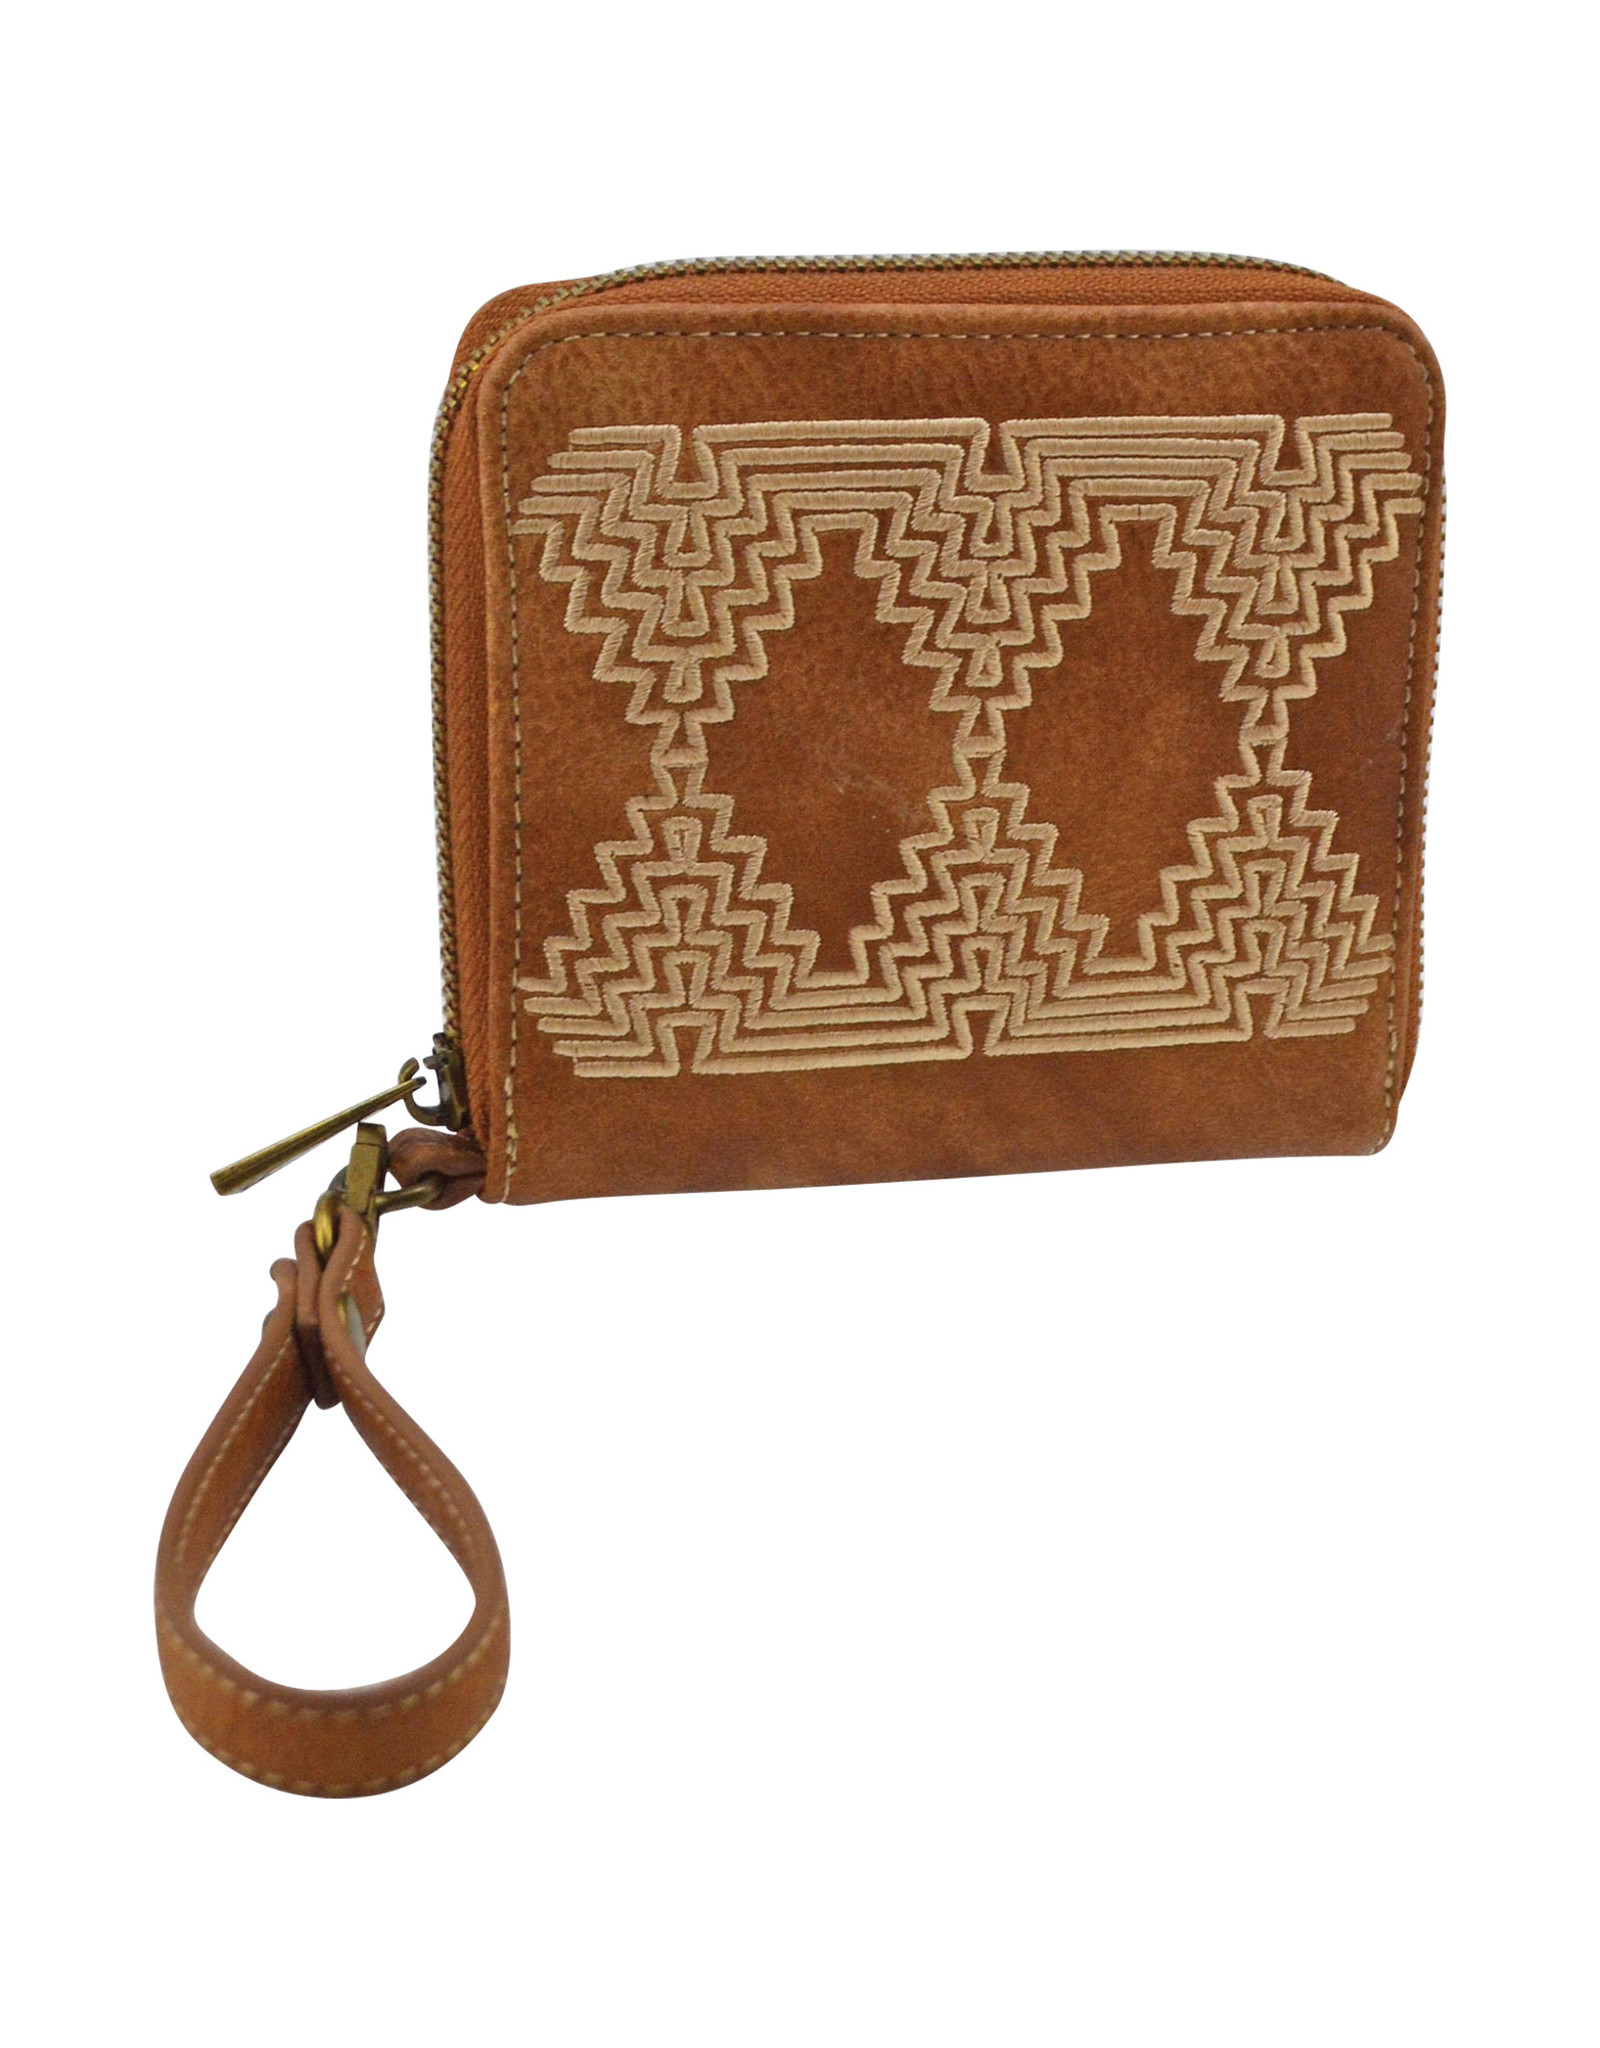 Catchfly 2004559W Catchfly Courtney Wallet - Aged Saddle